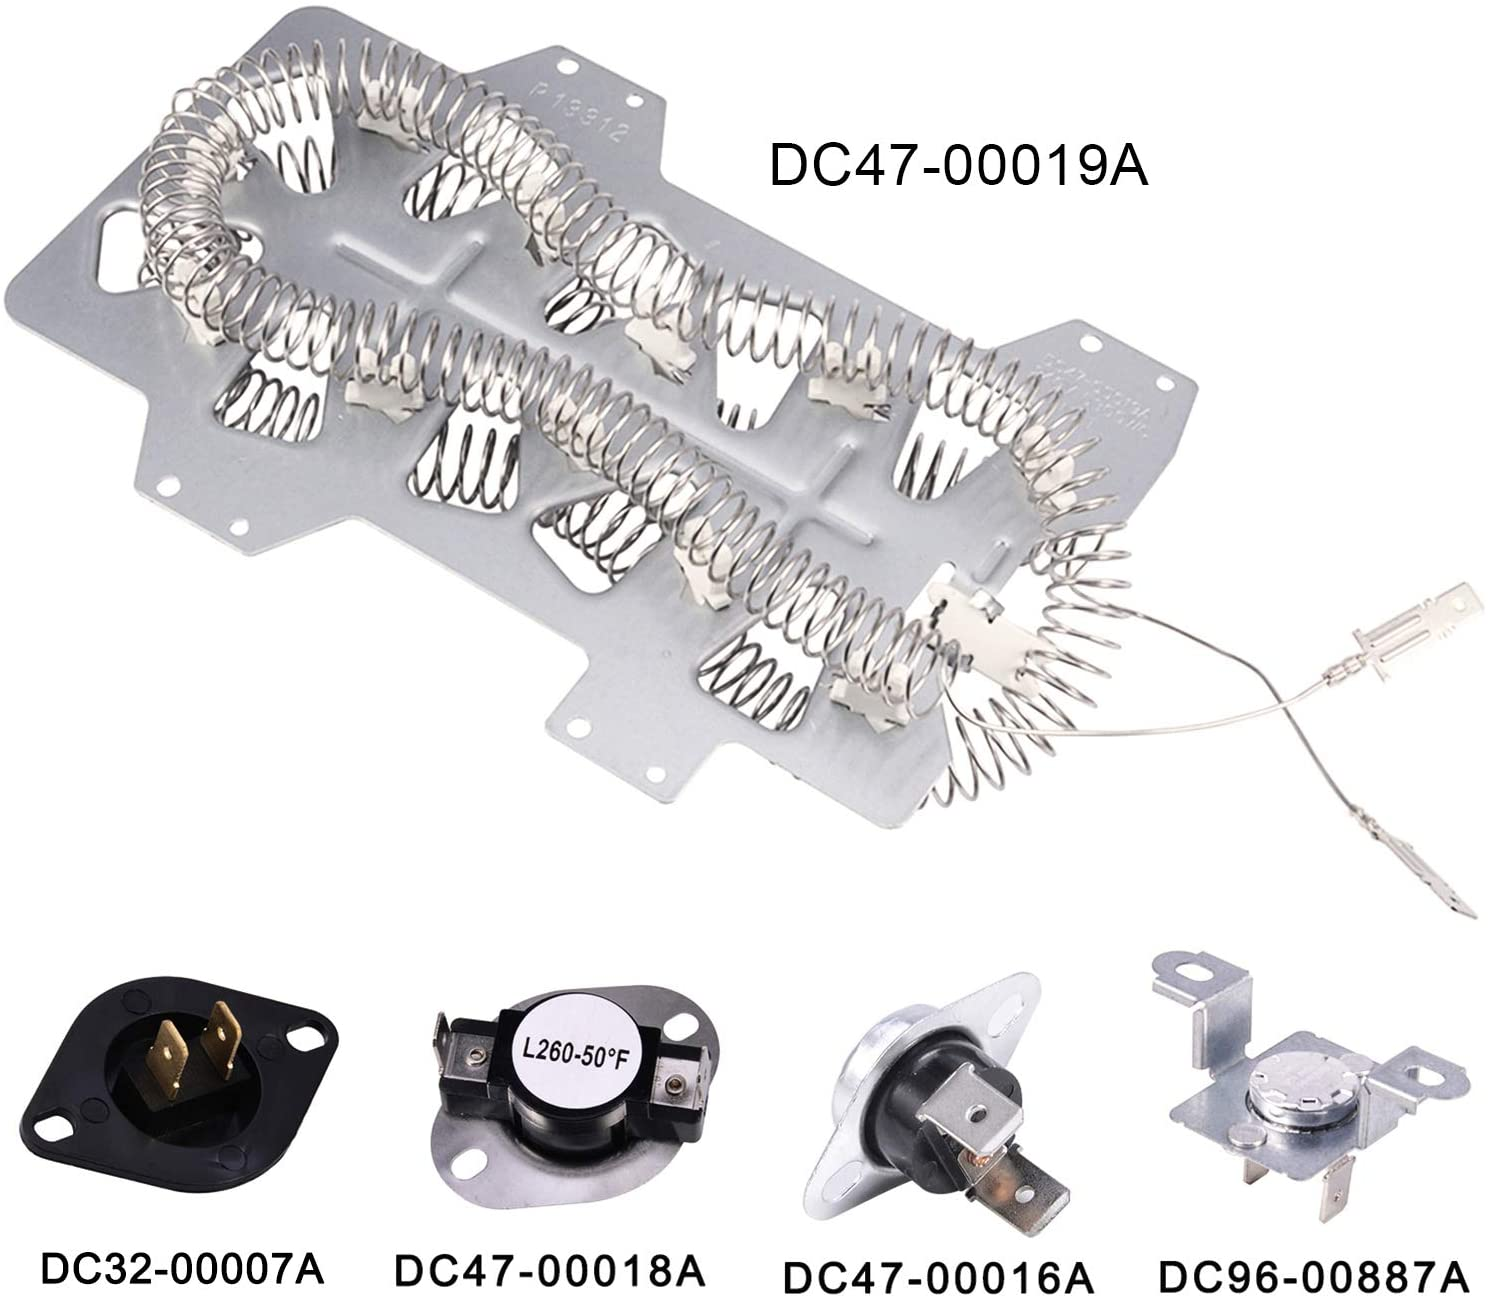 DC47-00019A Heating Element & DC96-00887A Assy Bracket Thermostat & DC47-00016A Dryer Thermal Cut-Off Fuse & DC47-00018A Thermostat & DC32-00007A Thermistor,Dryer Repair Kit for Samsung,Maytag(5 Pack)